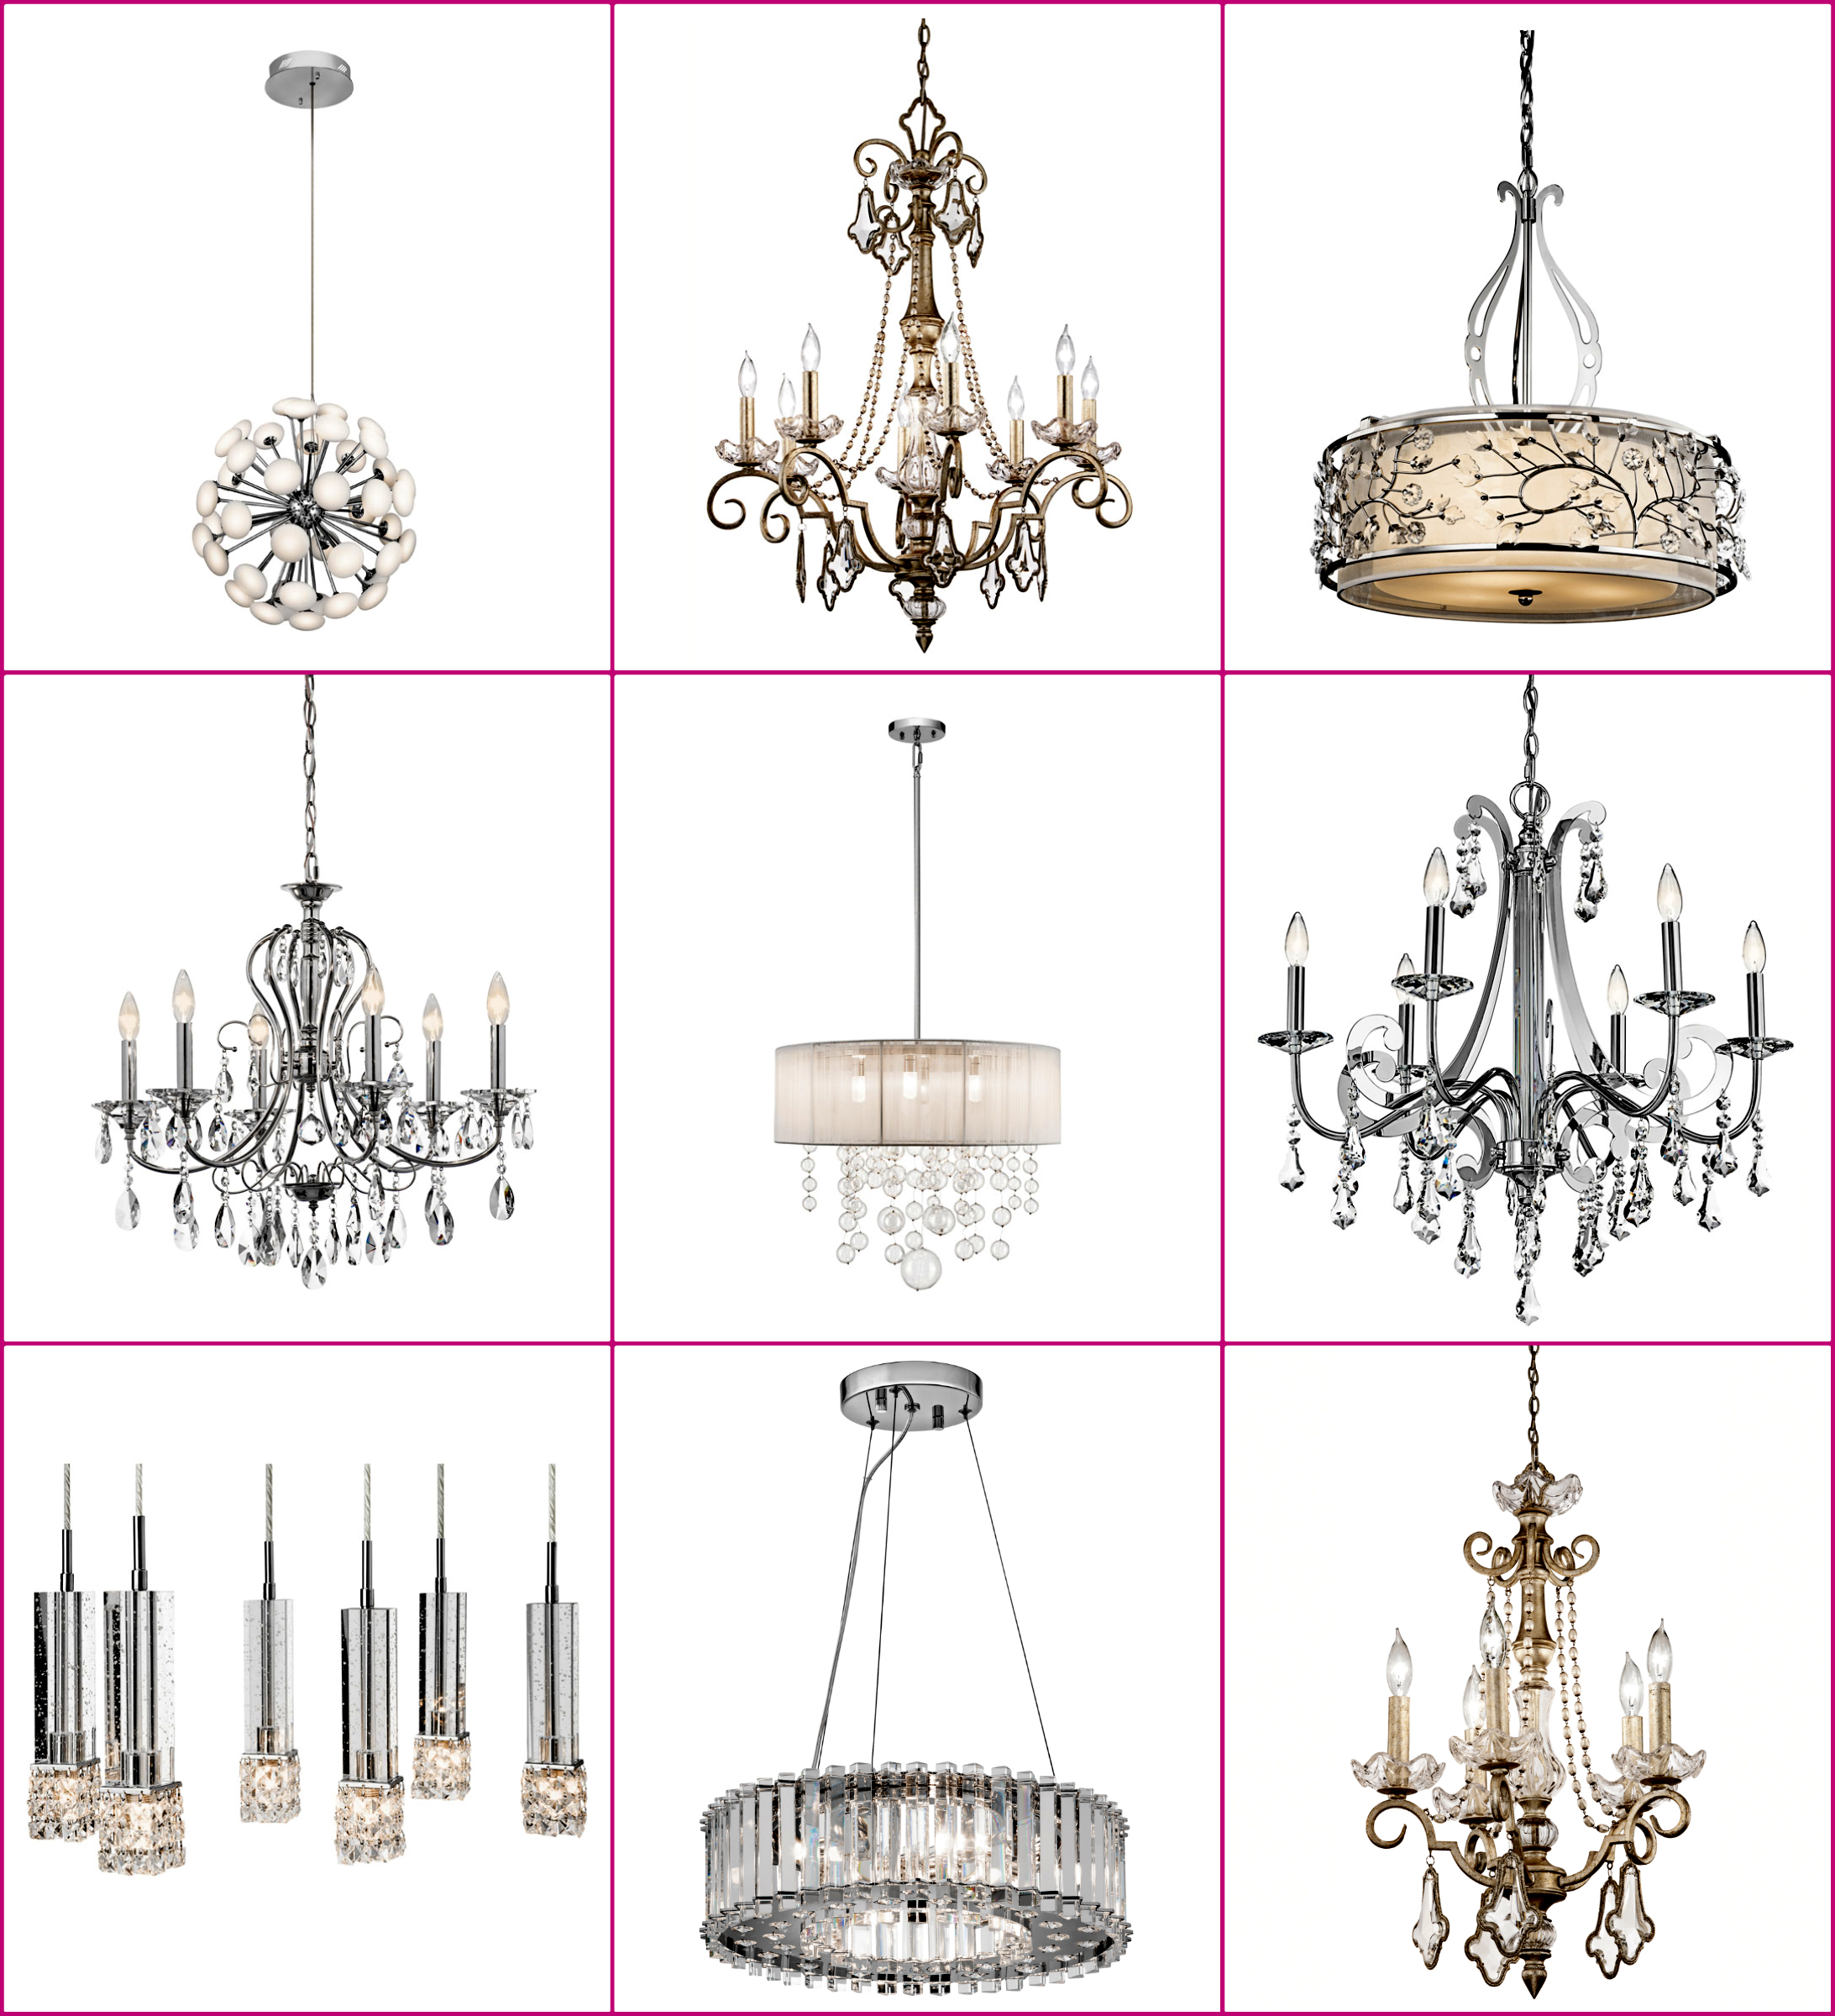 light metal simple photos buy prices compare roof brass cheap antique crystal white with bronze exciting designs wall and house for gold lighting chandelier